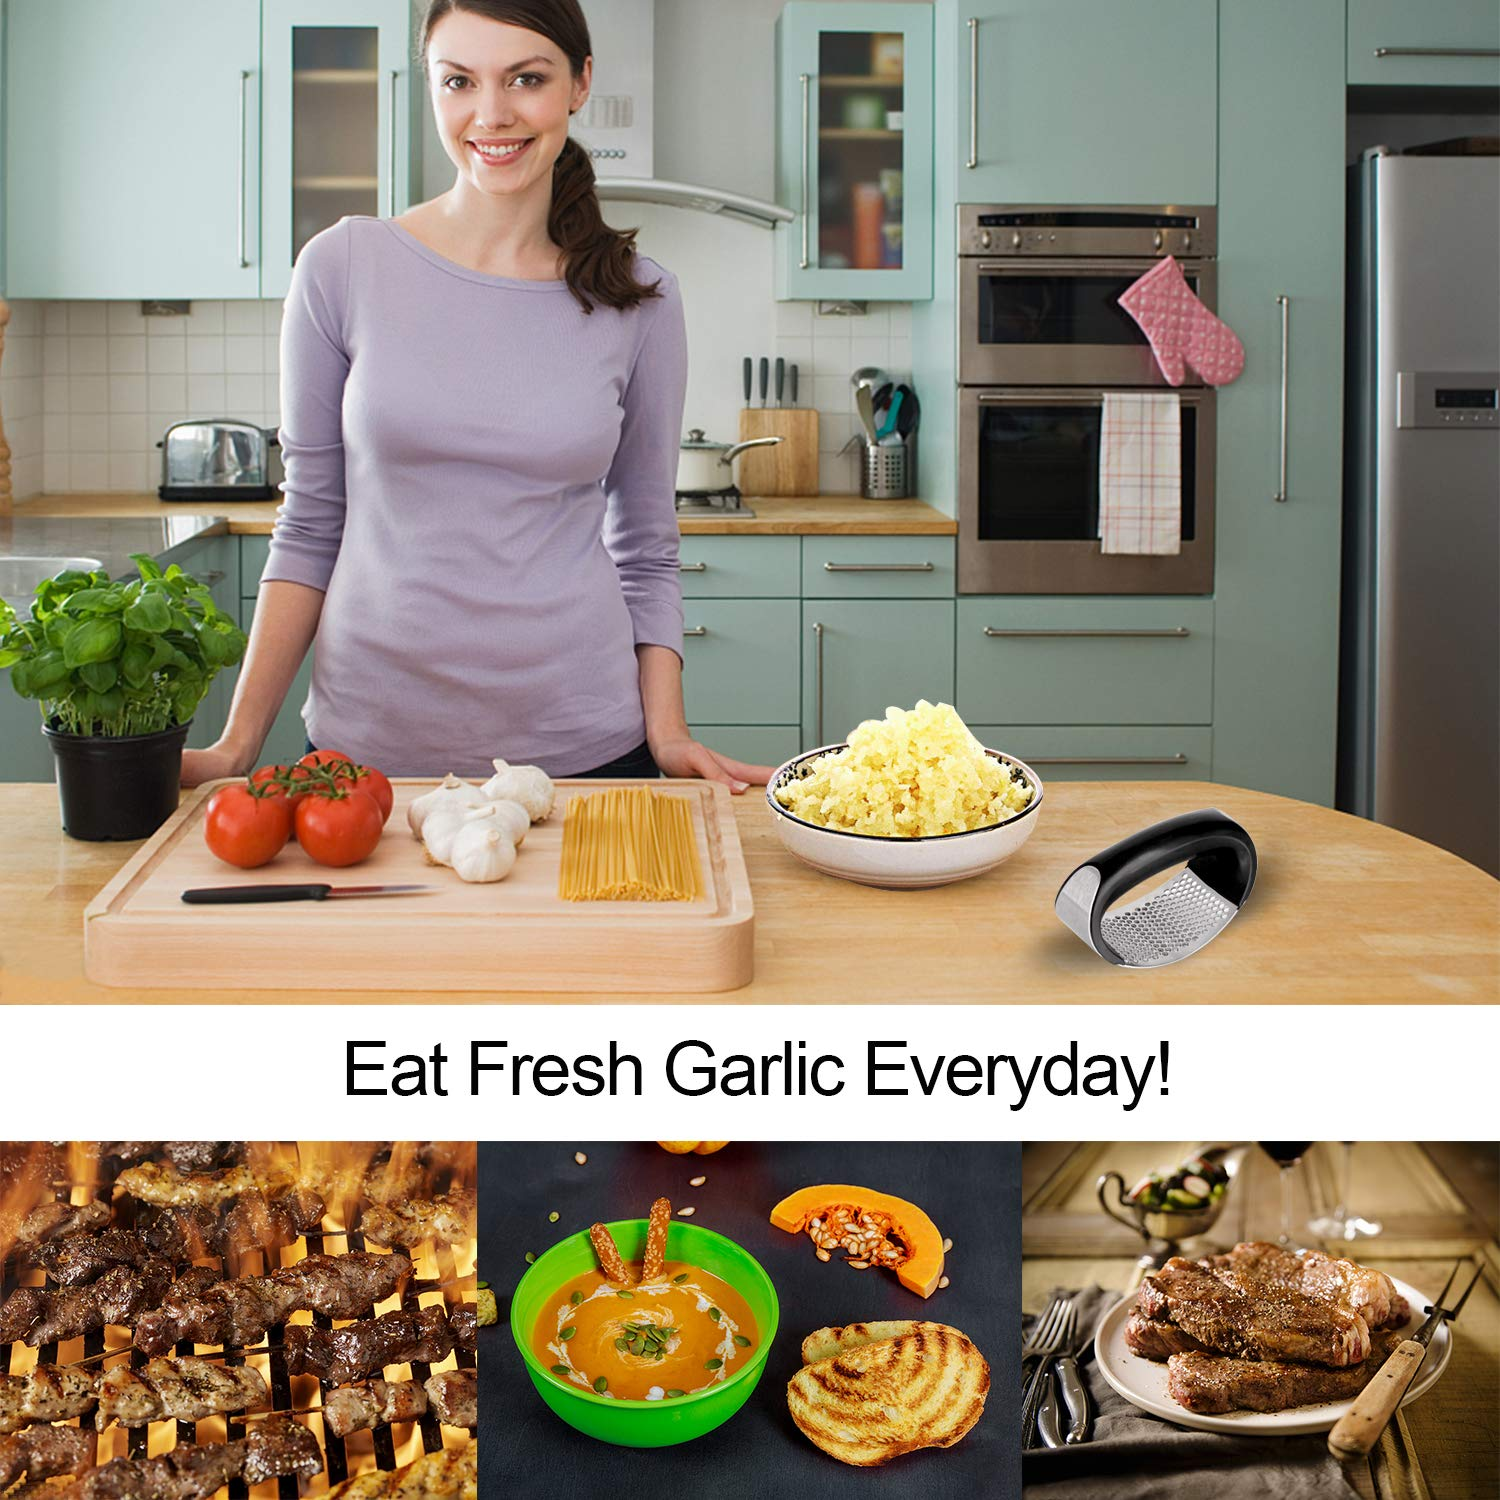 Convenient Hand Press Garlic Tools-20% Off Only This Week,Global Free Shipping